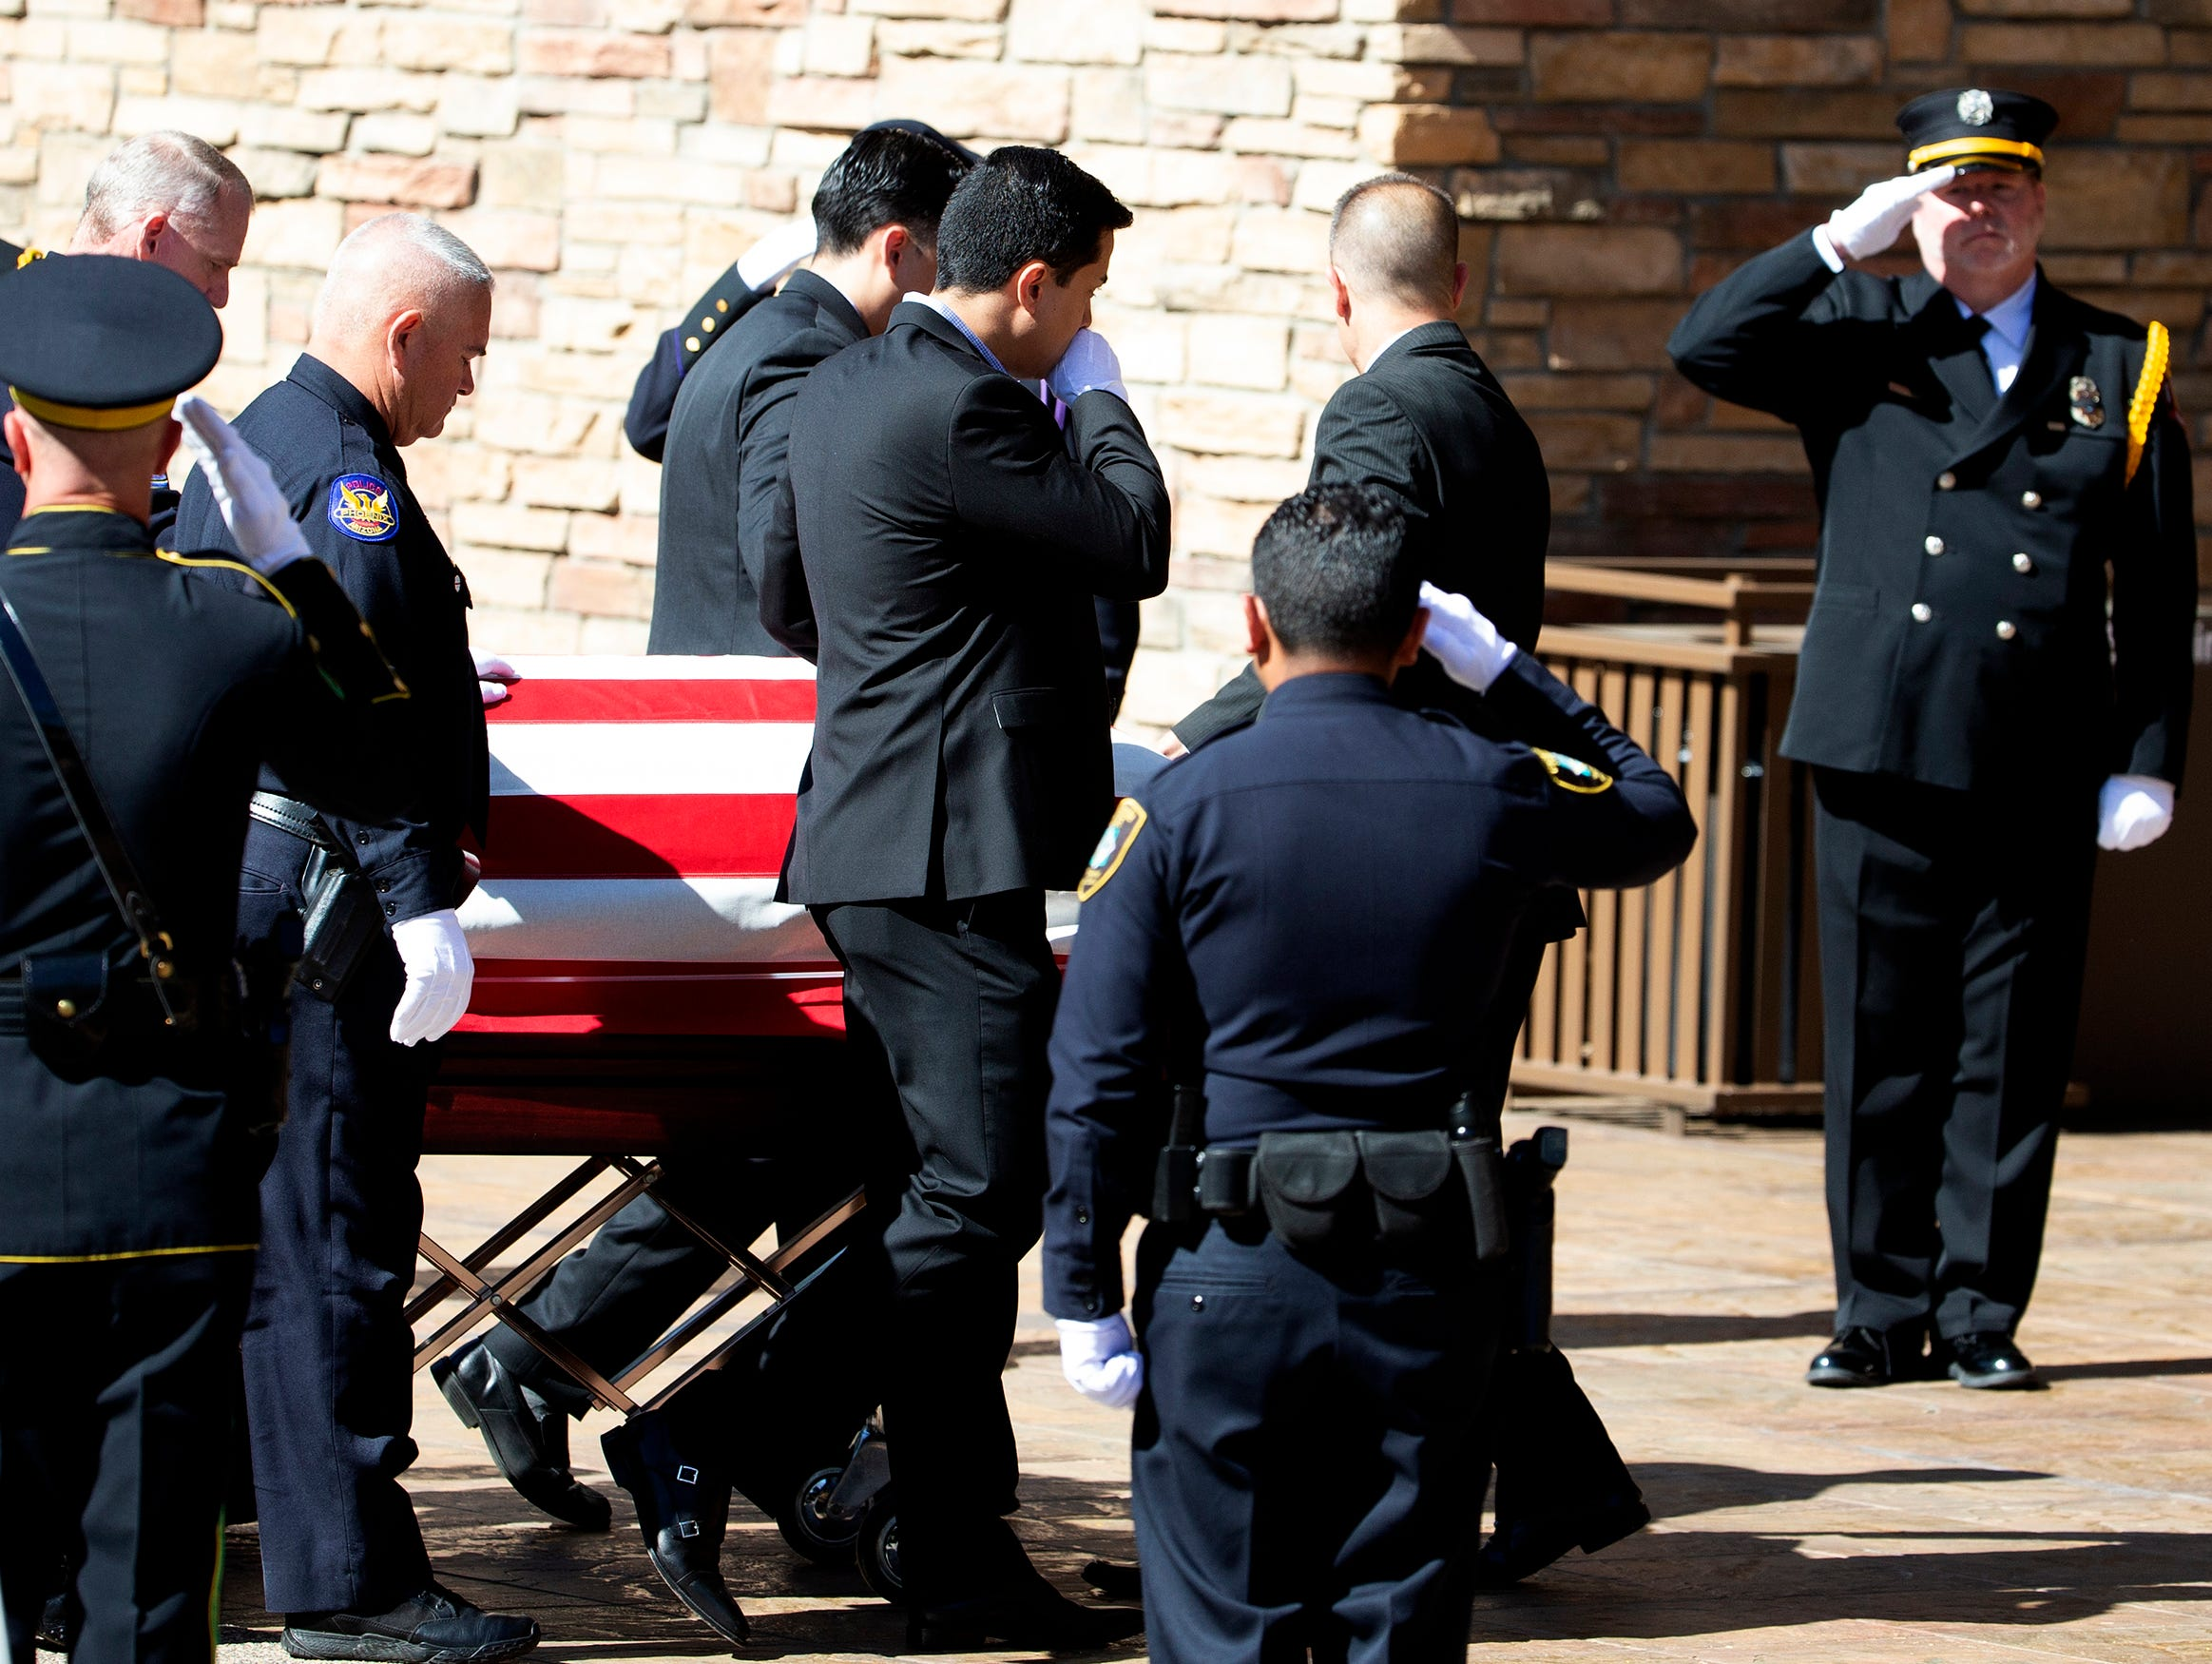 Pallbearers escort the casket of Phoenix police Officer Paul Rutherford during funeral services at Christ's Church of the Valley in Peoria on March 28, 2019.  Rutherford was killed during a crash investigation March 21.